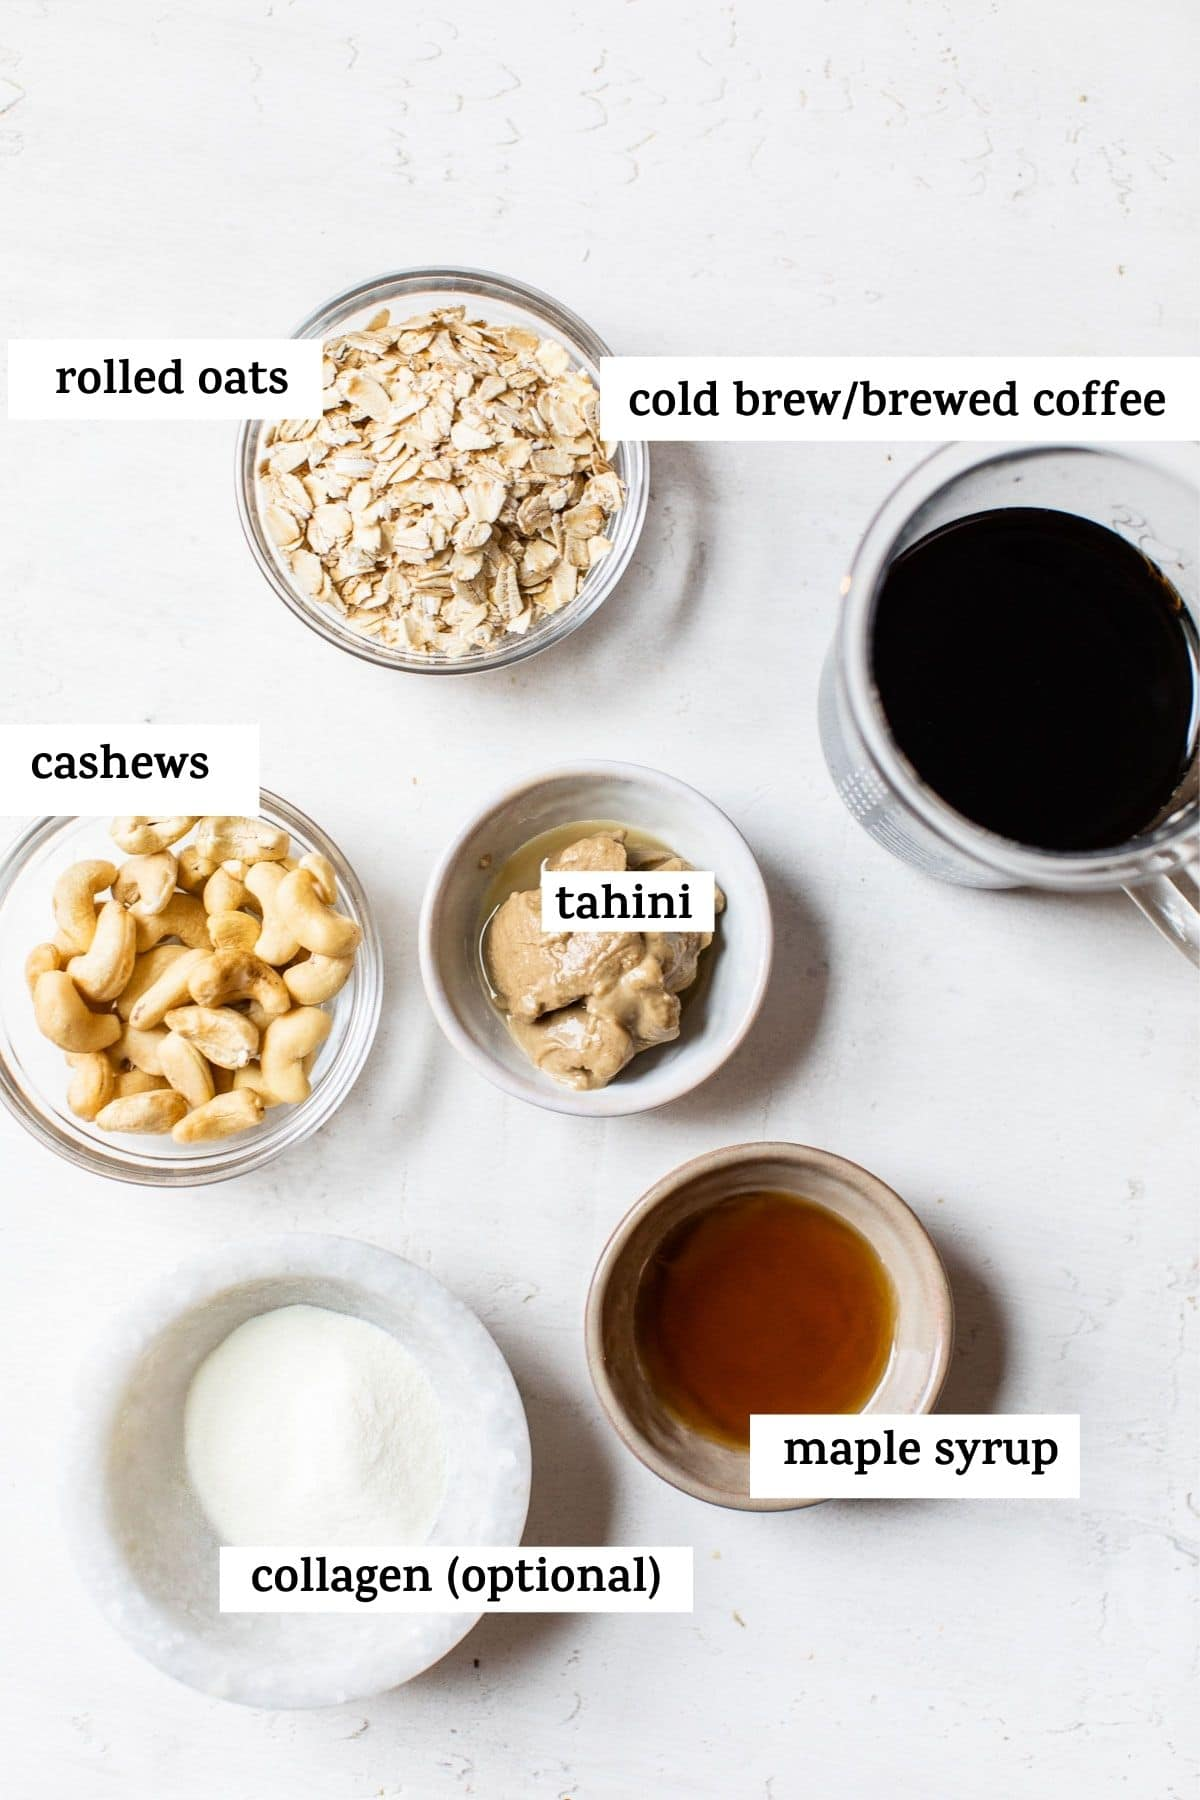 ingredients in small bowls with text